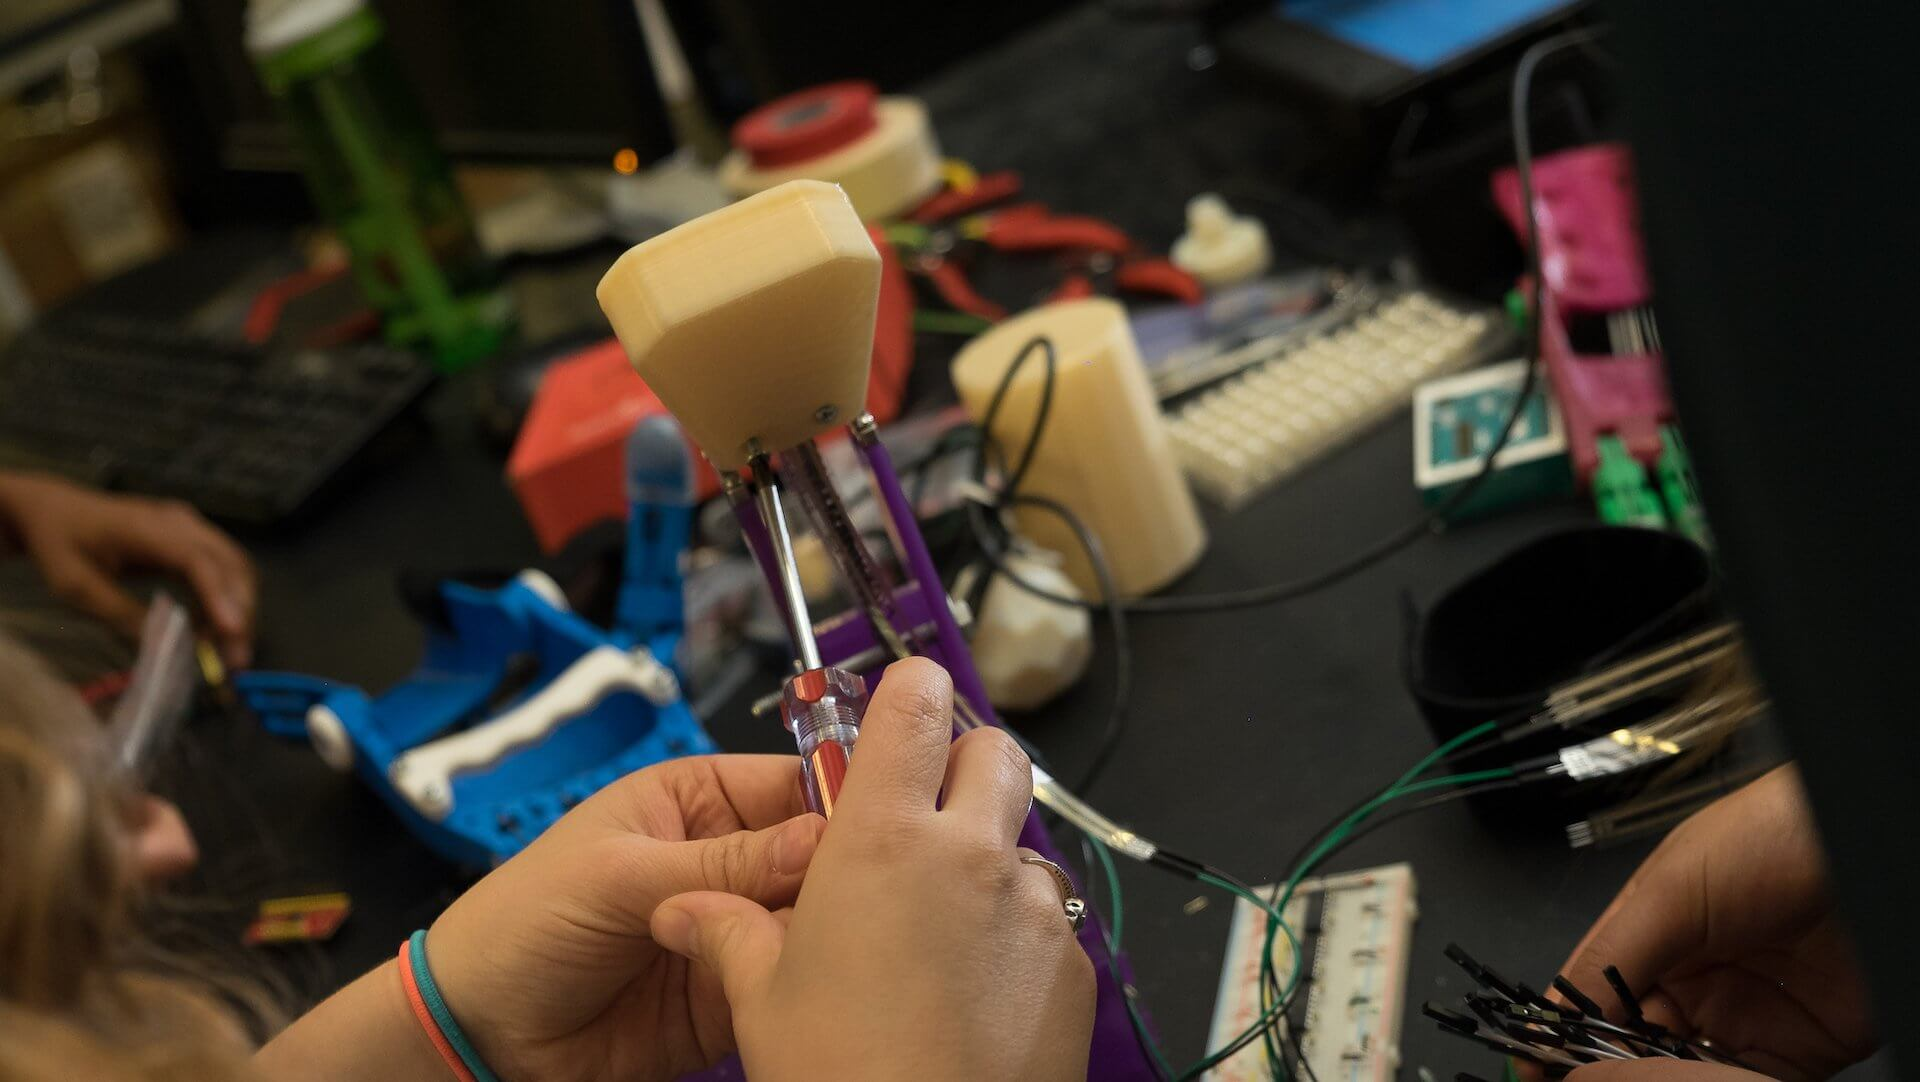 Rice University engineering students are building a testing suite to validate 3-D printed prosthetics for children with congenital partial hands. (Credit: Jeff Fitlow/Rice University)